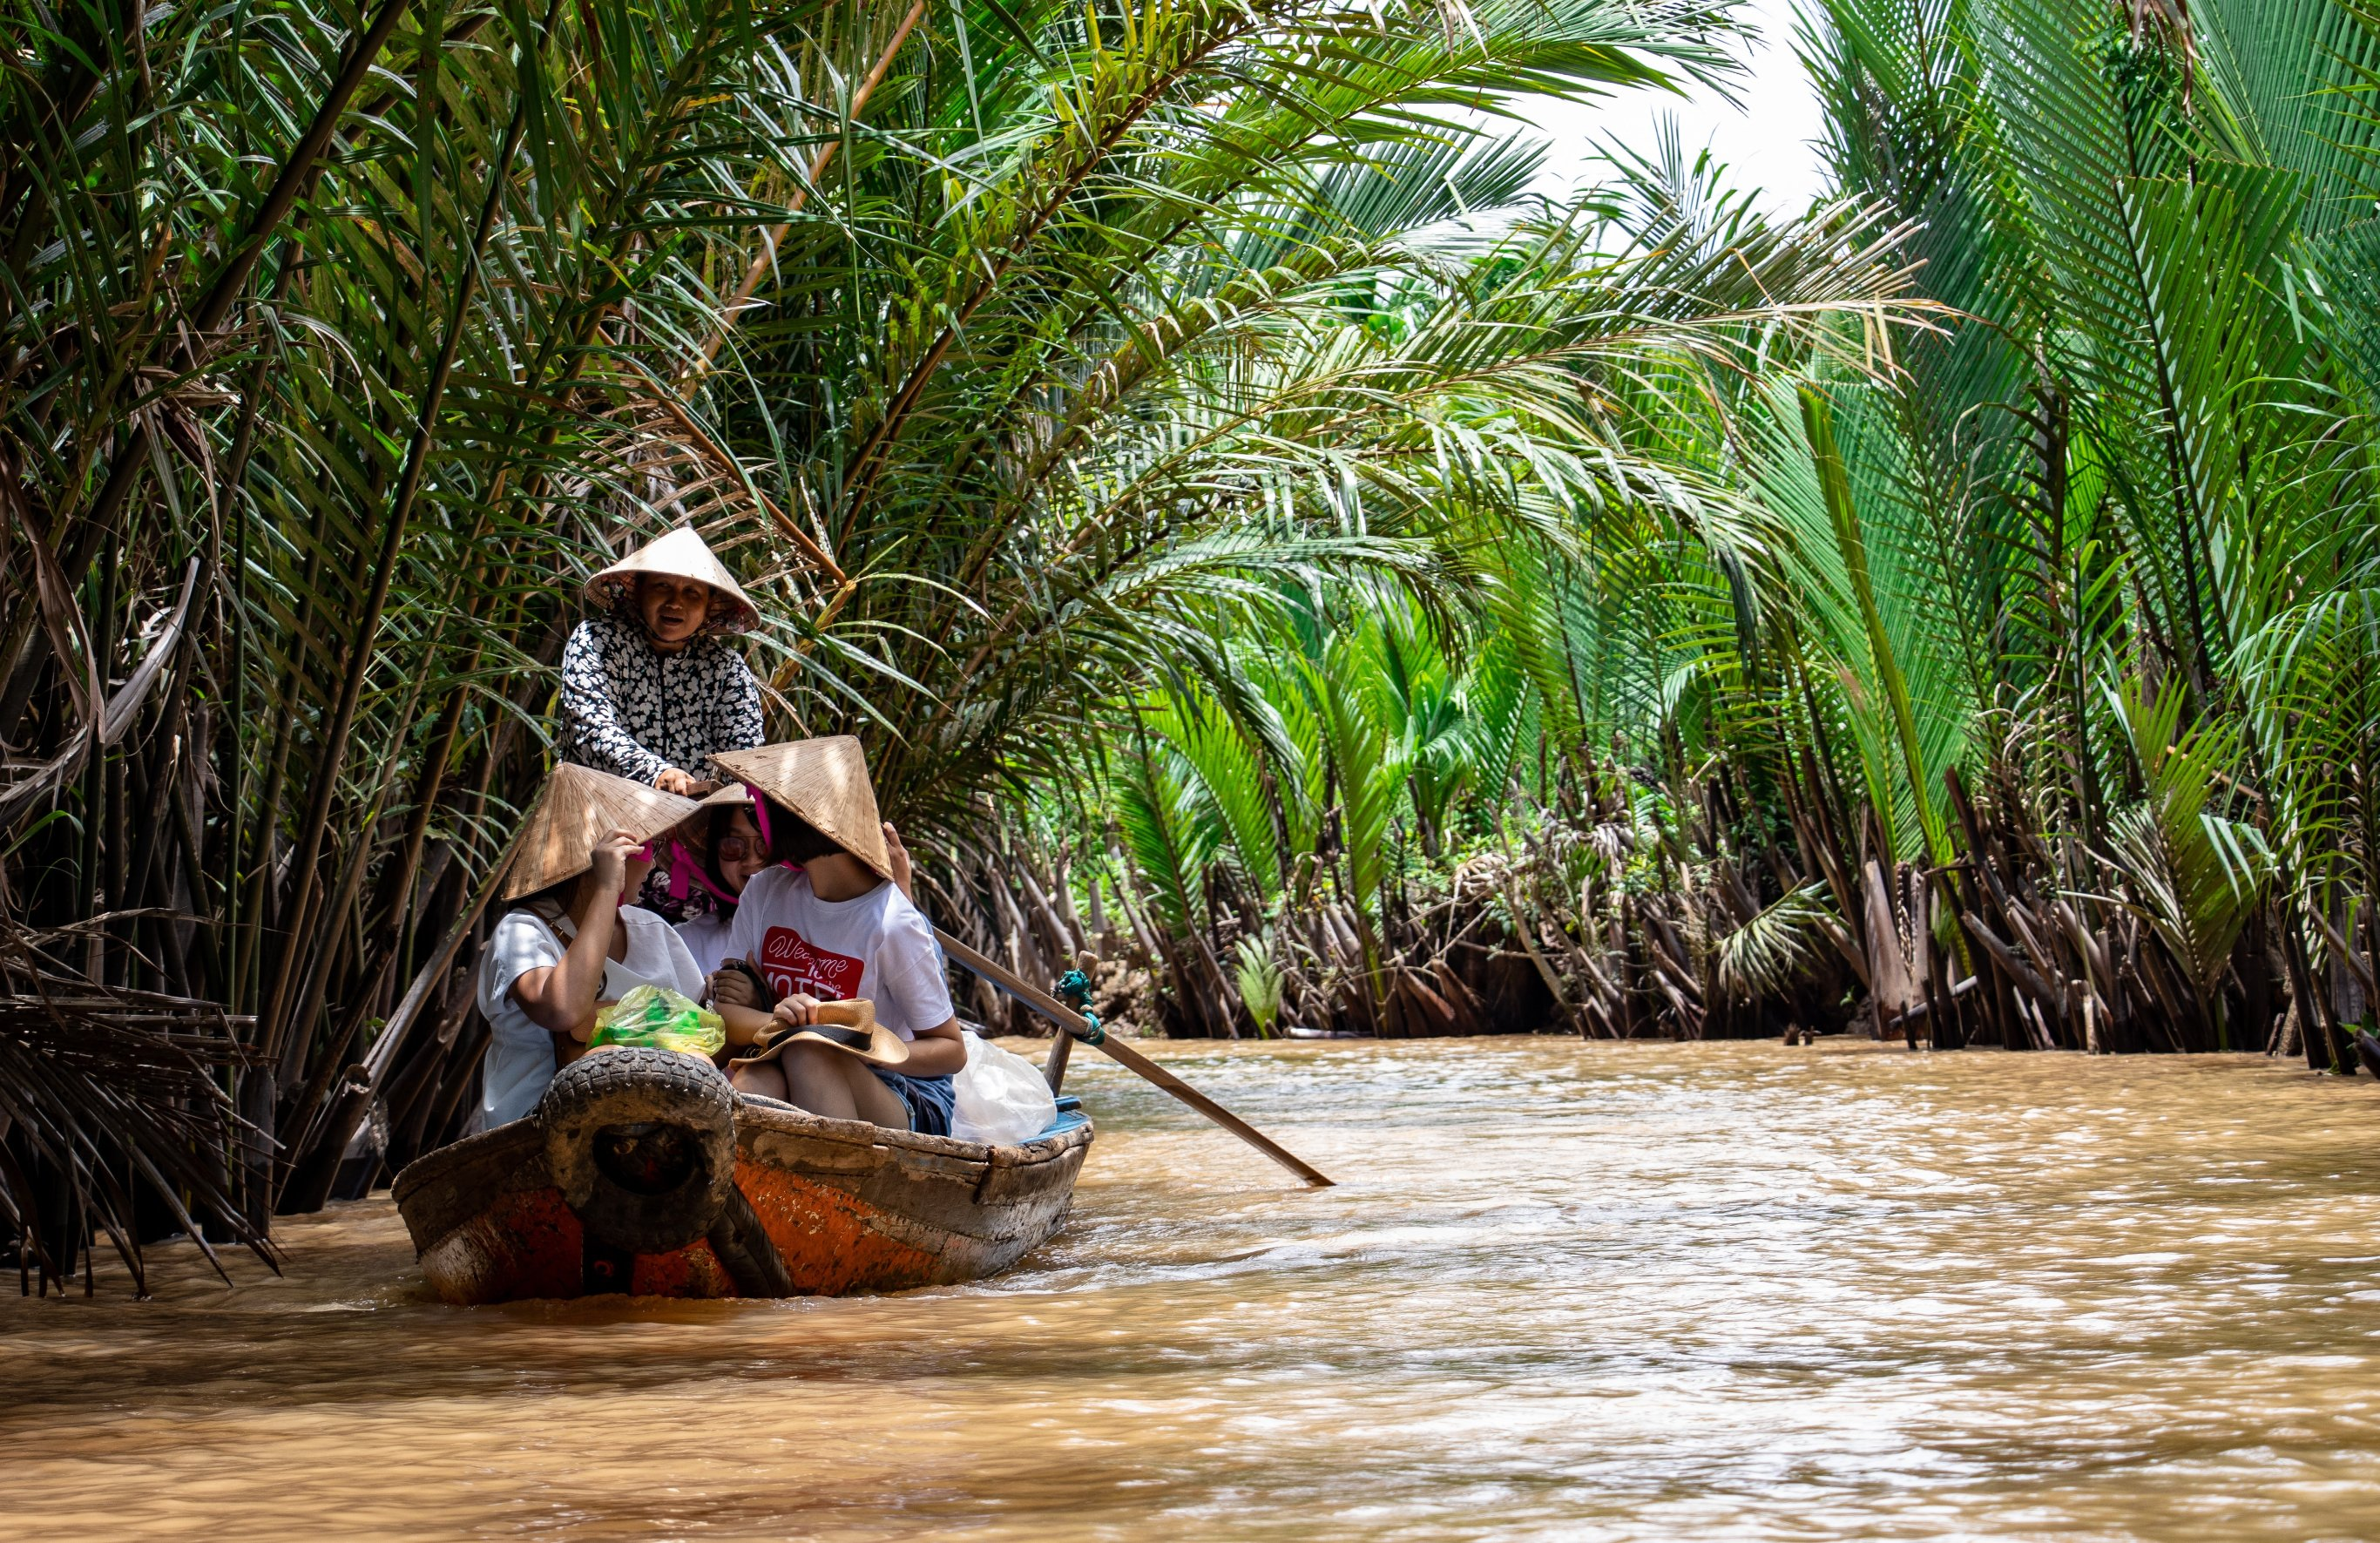 8-Day Cycling in the Rural Mekong Delta - Vietnam Itinerary